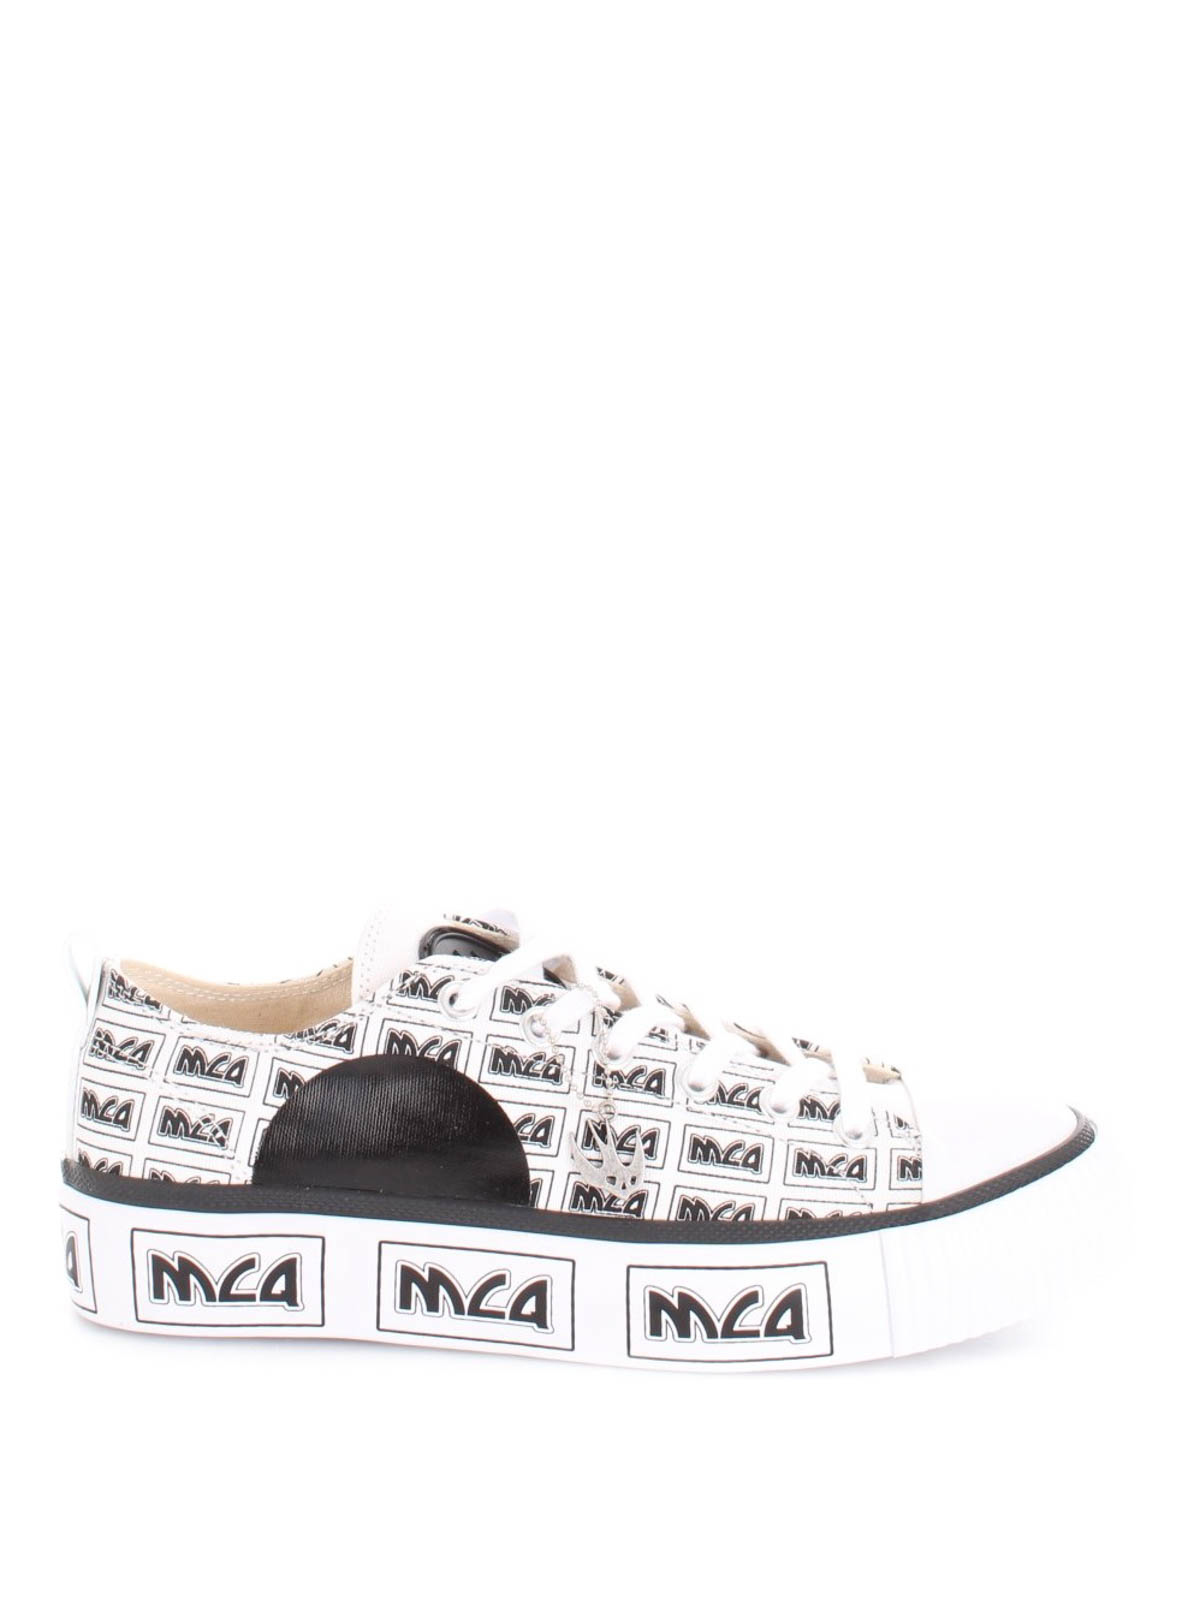 Mcq - Plimsoll sneakers - trainers